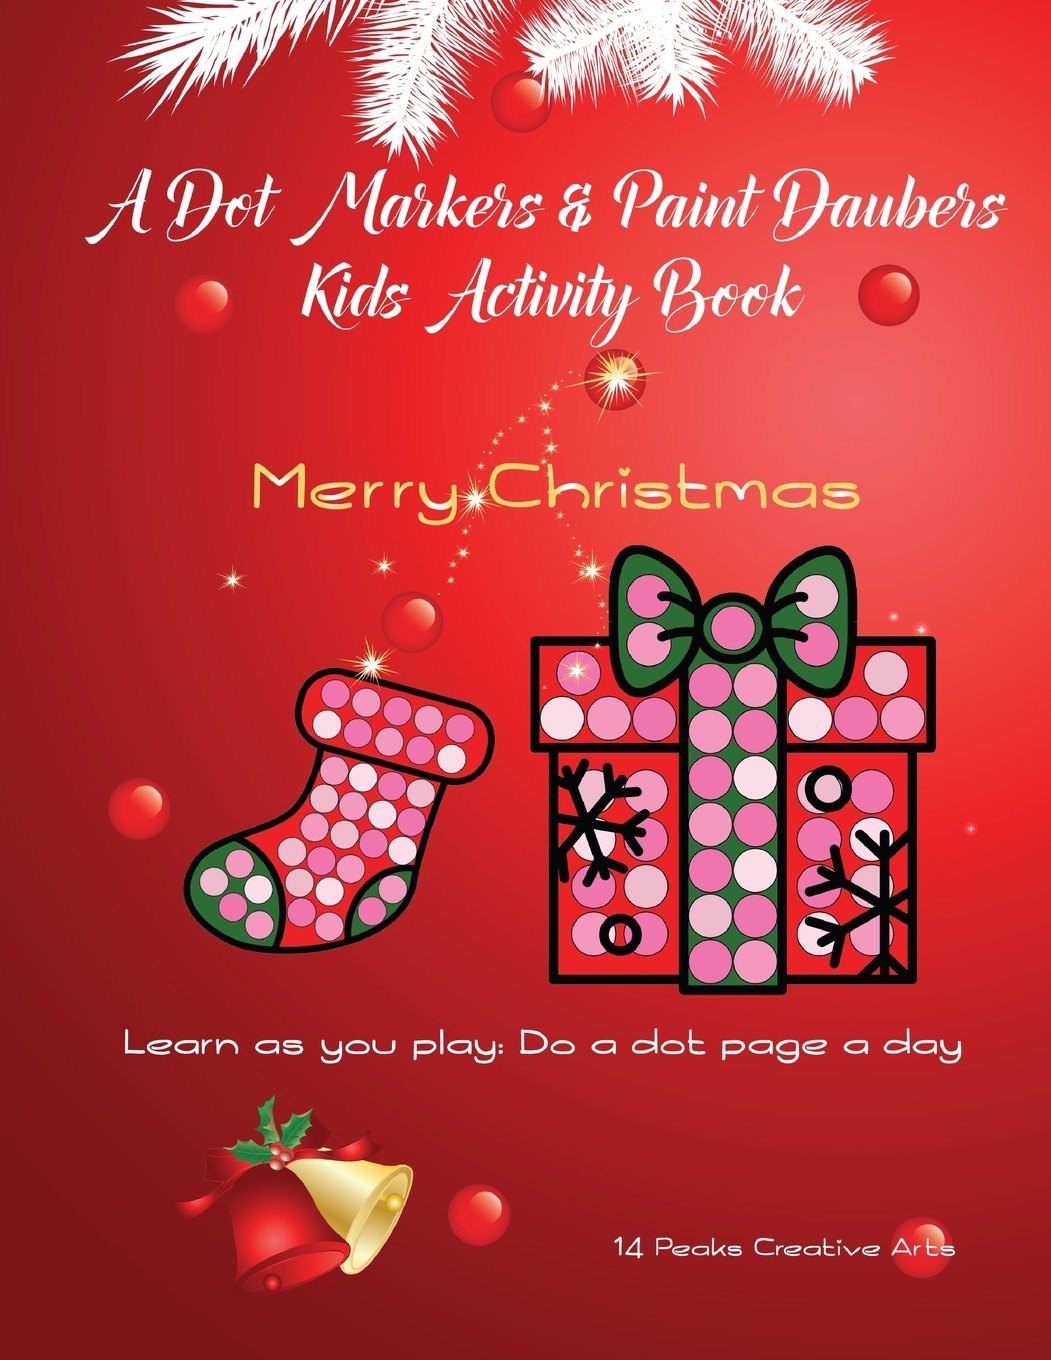 Christmas Dauber Coloring Pages With A Dot Markers Paint Daubers Kids Activity Book Merry